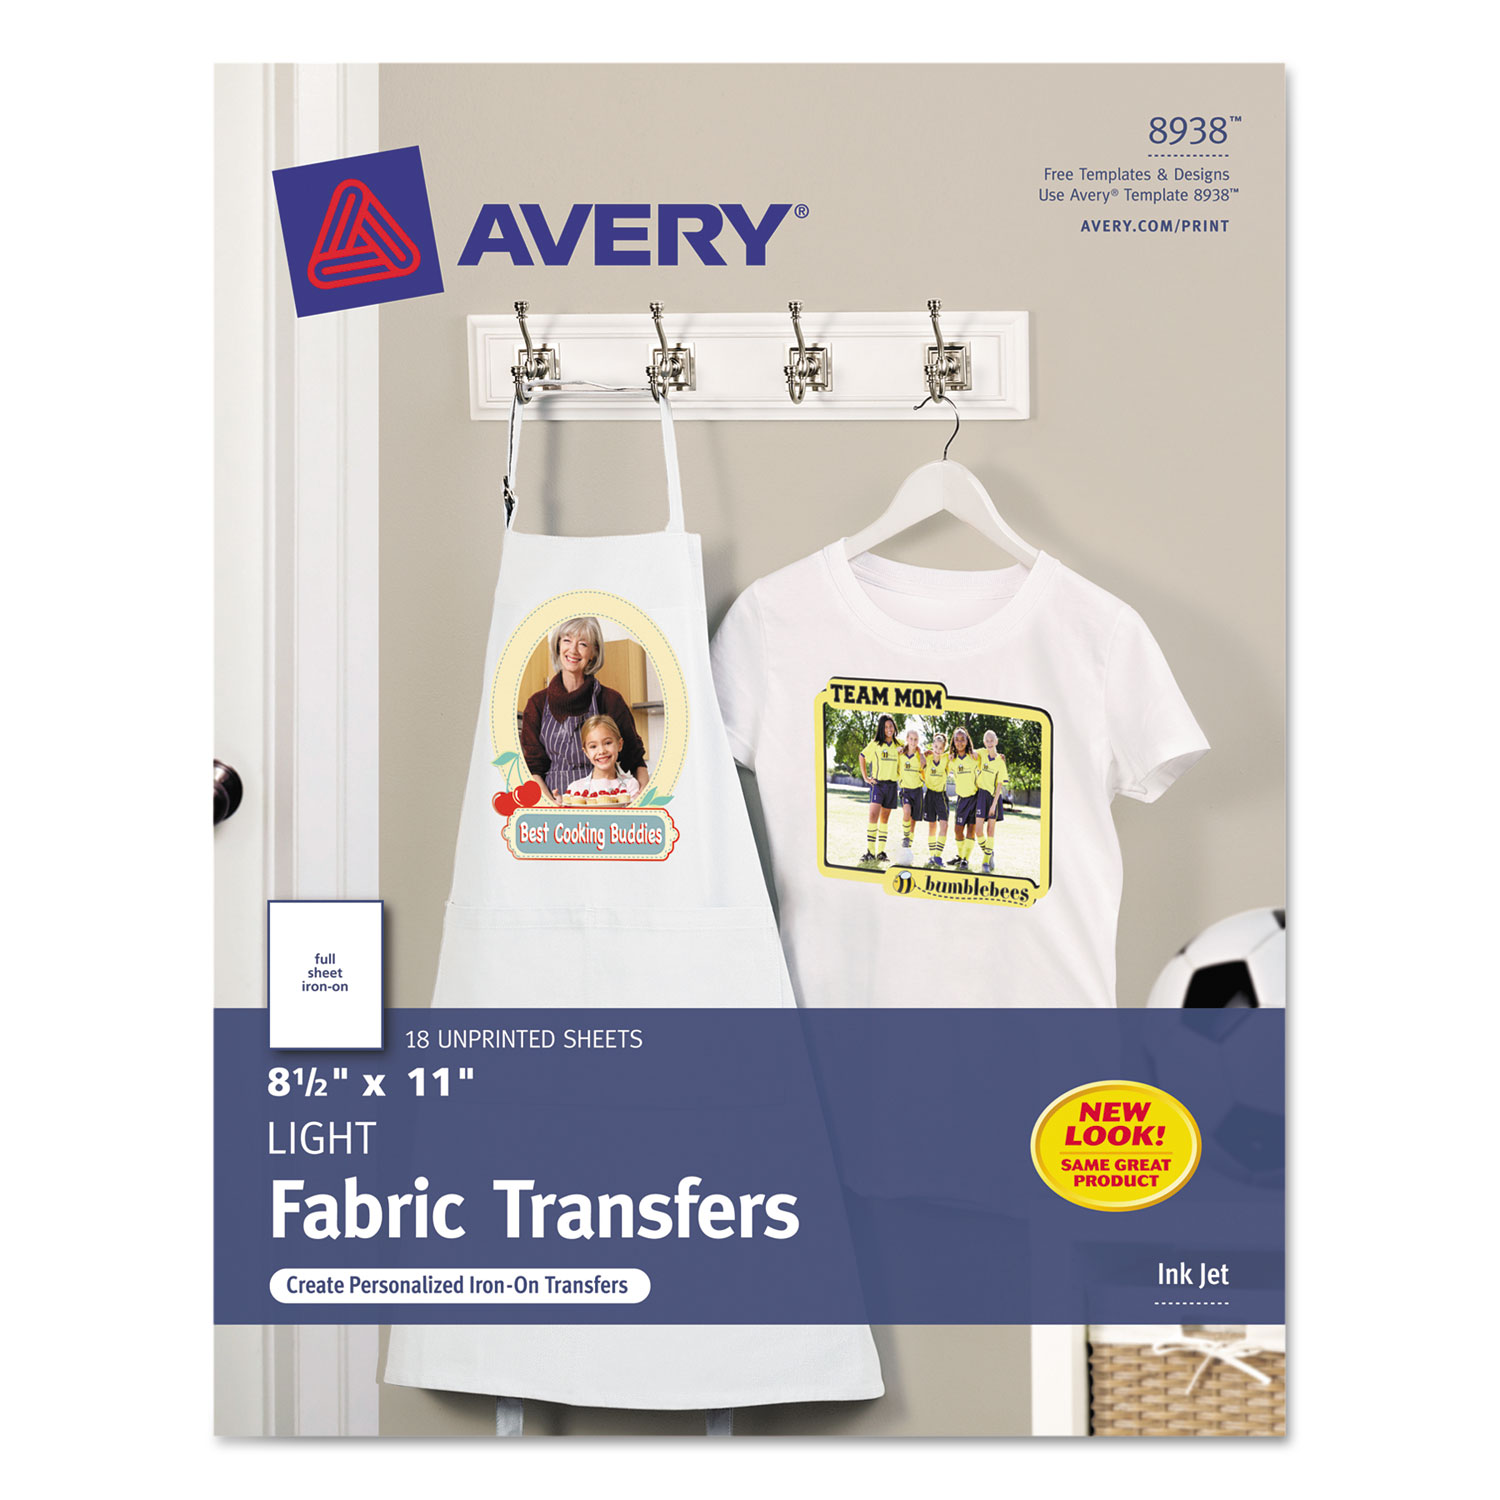 light fabric transfers for inkjet printers by avery